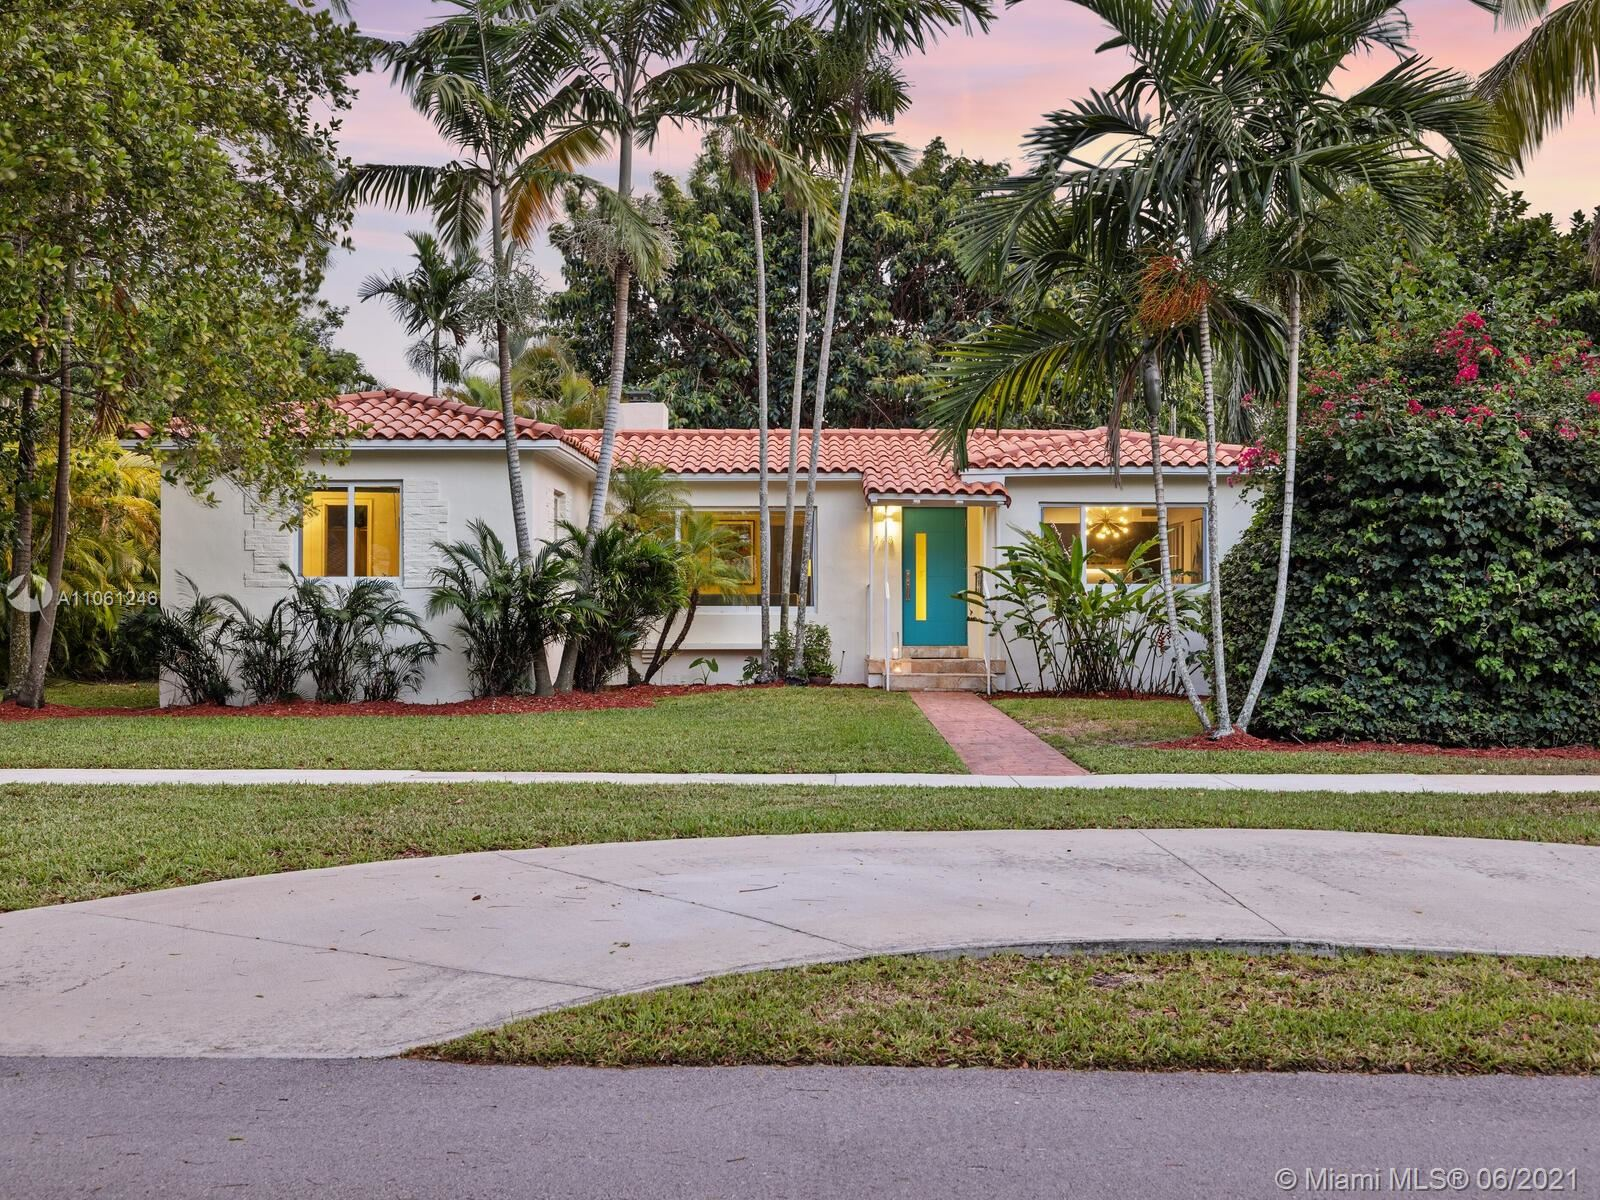 Photo of 148 NW 97th St, Miami Shores, FL 33150 (MLS # A11061246)